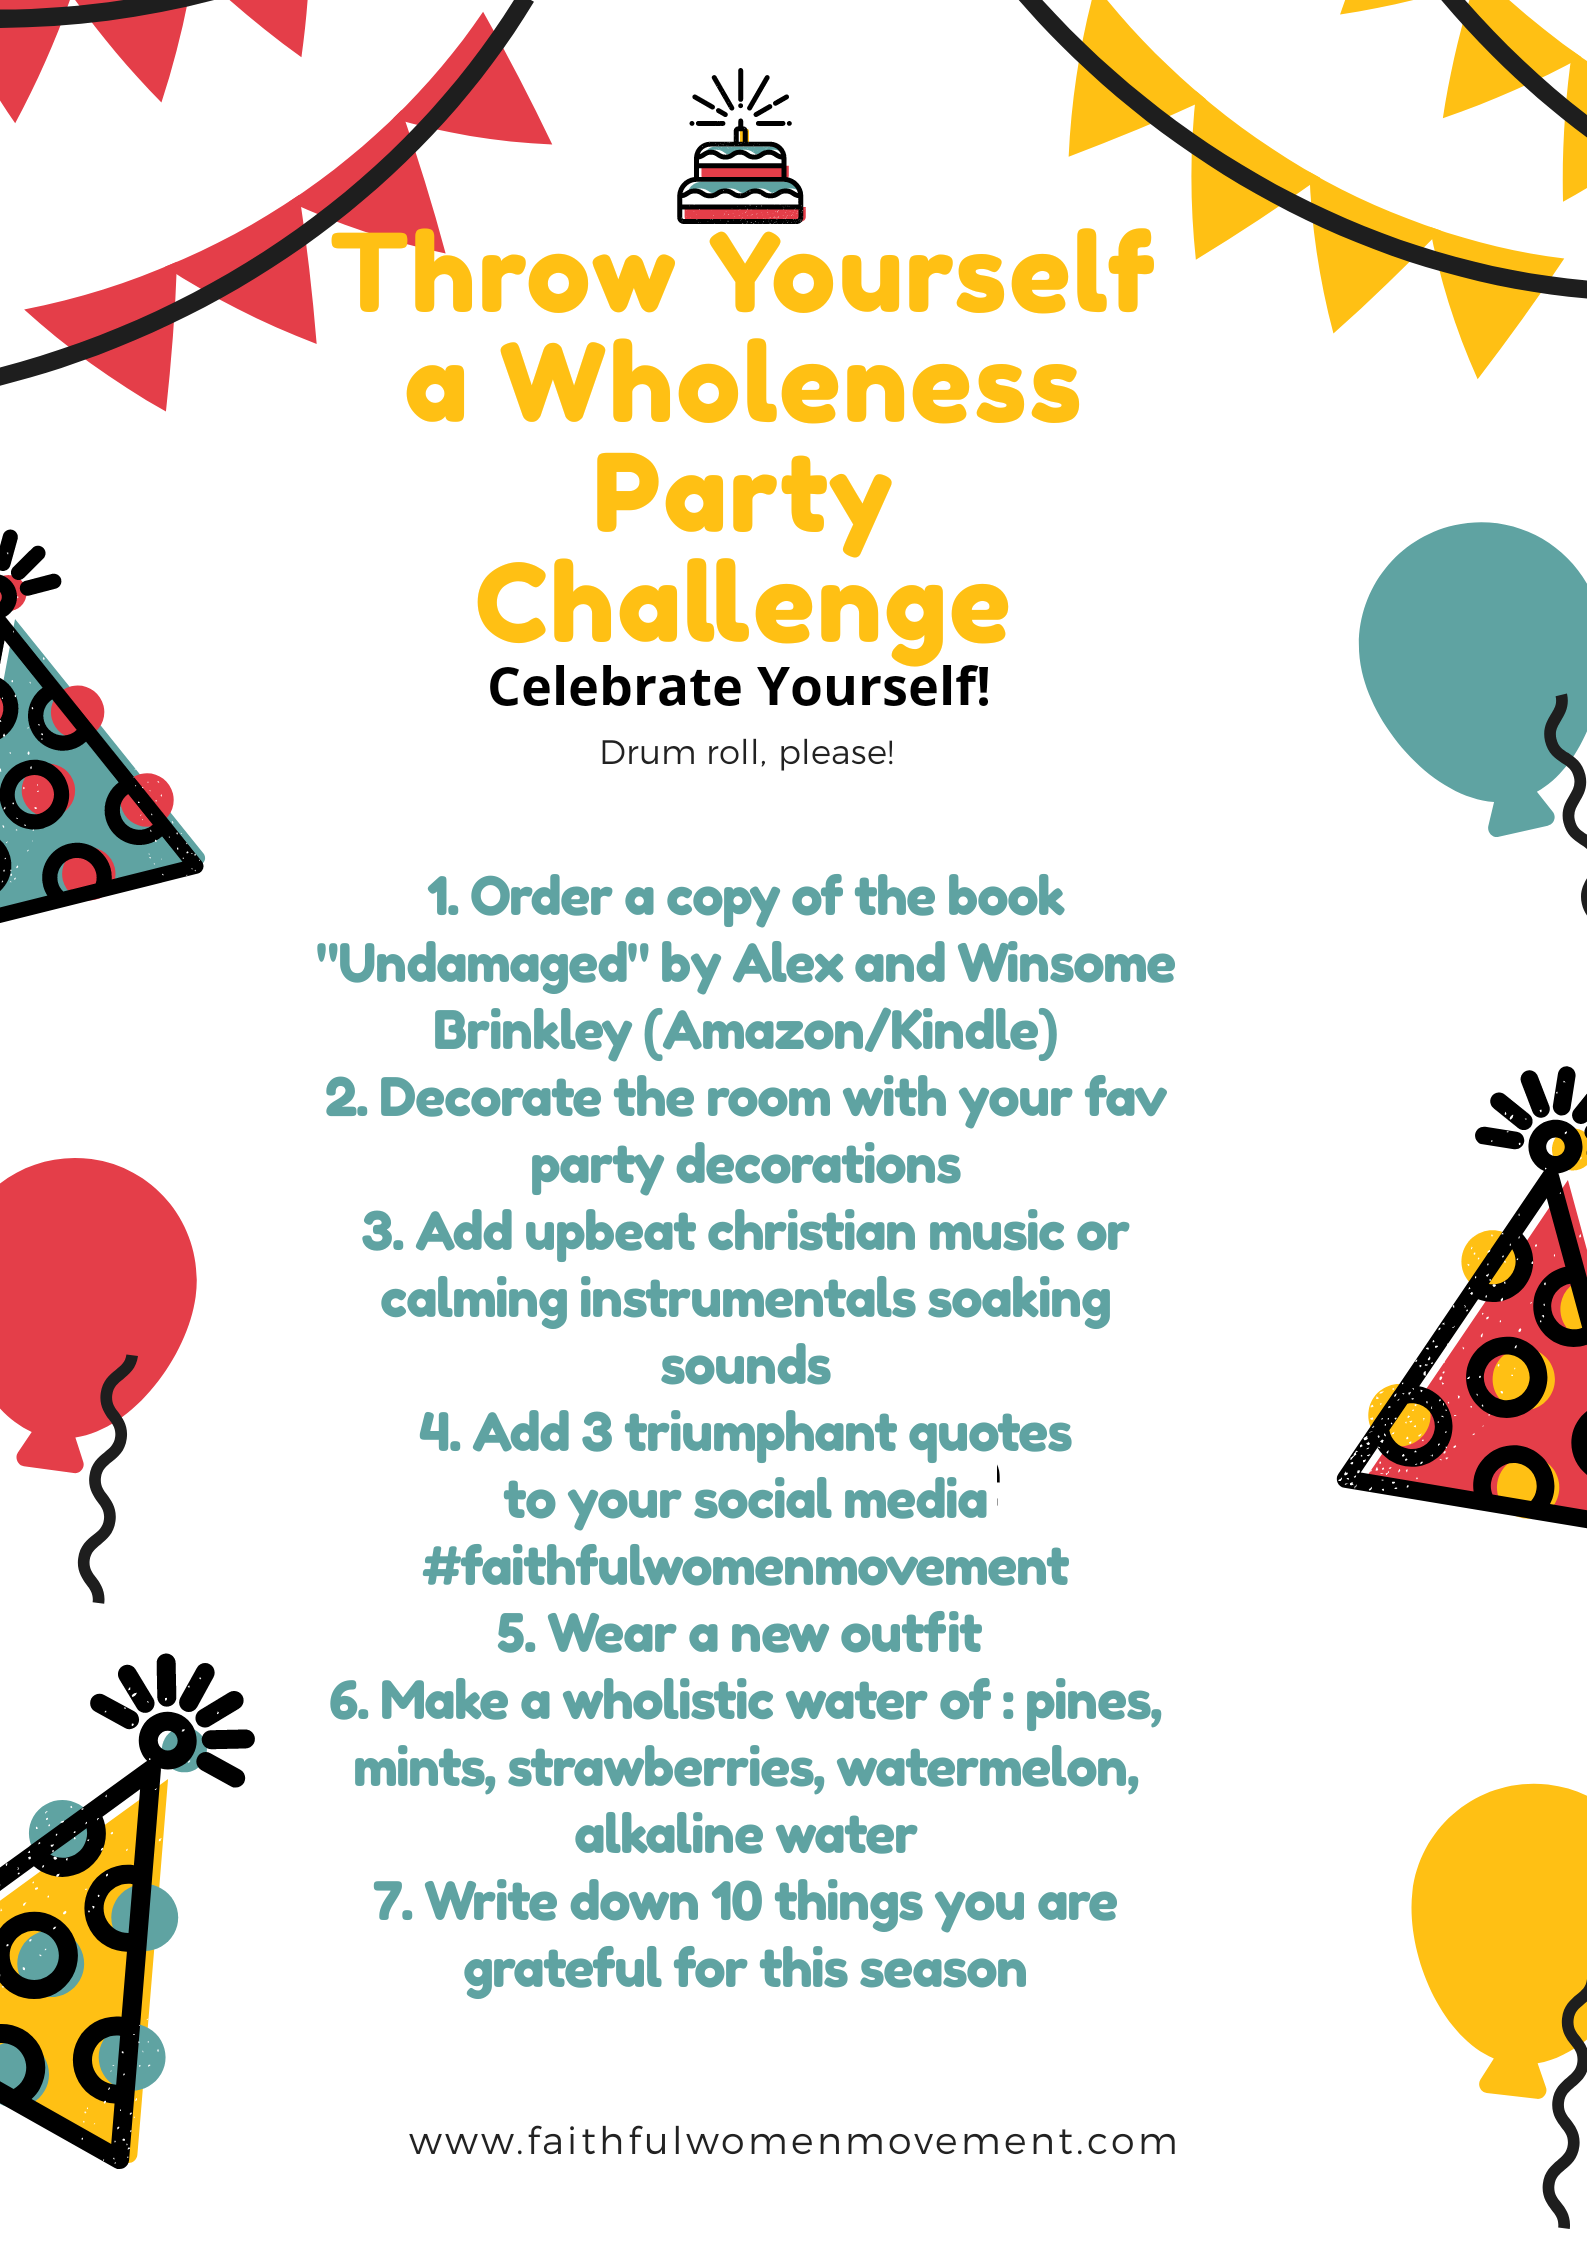 Throw Yourself a Wholeness Party Challenge